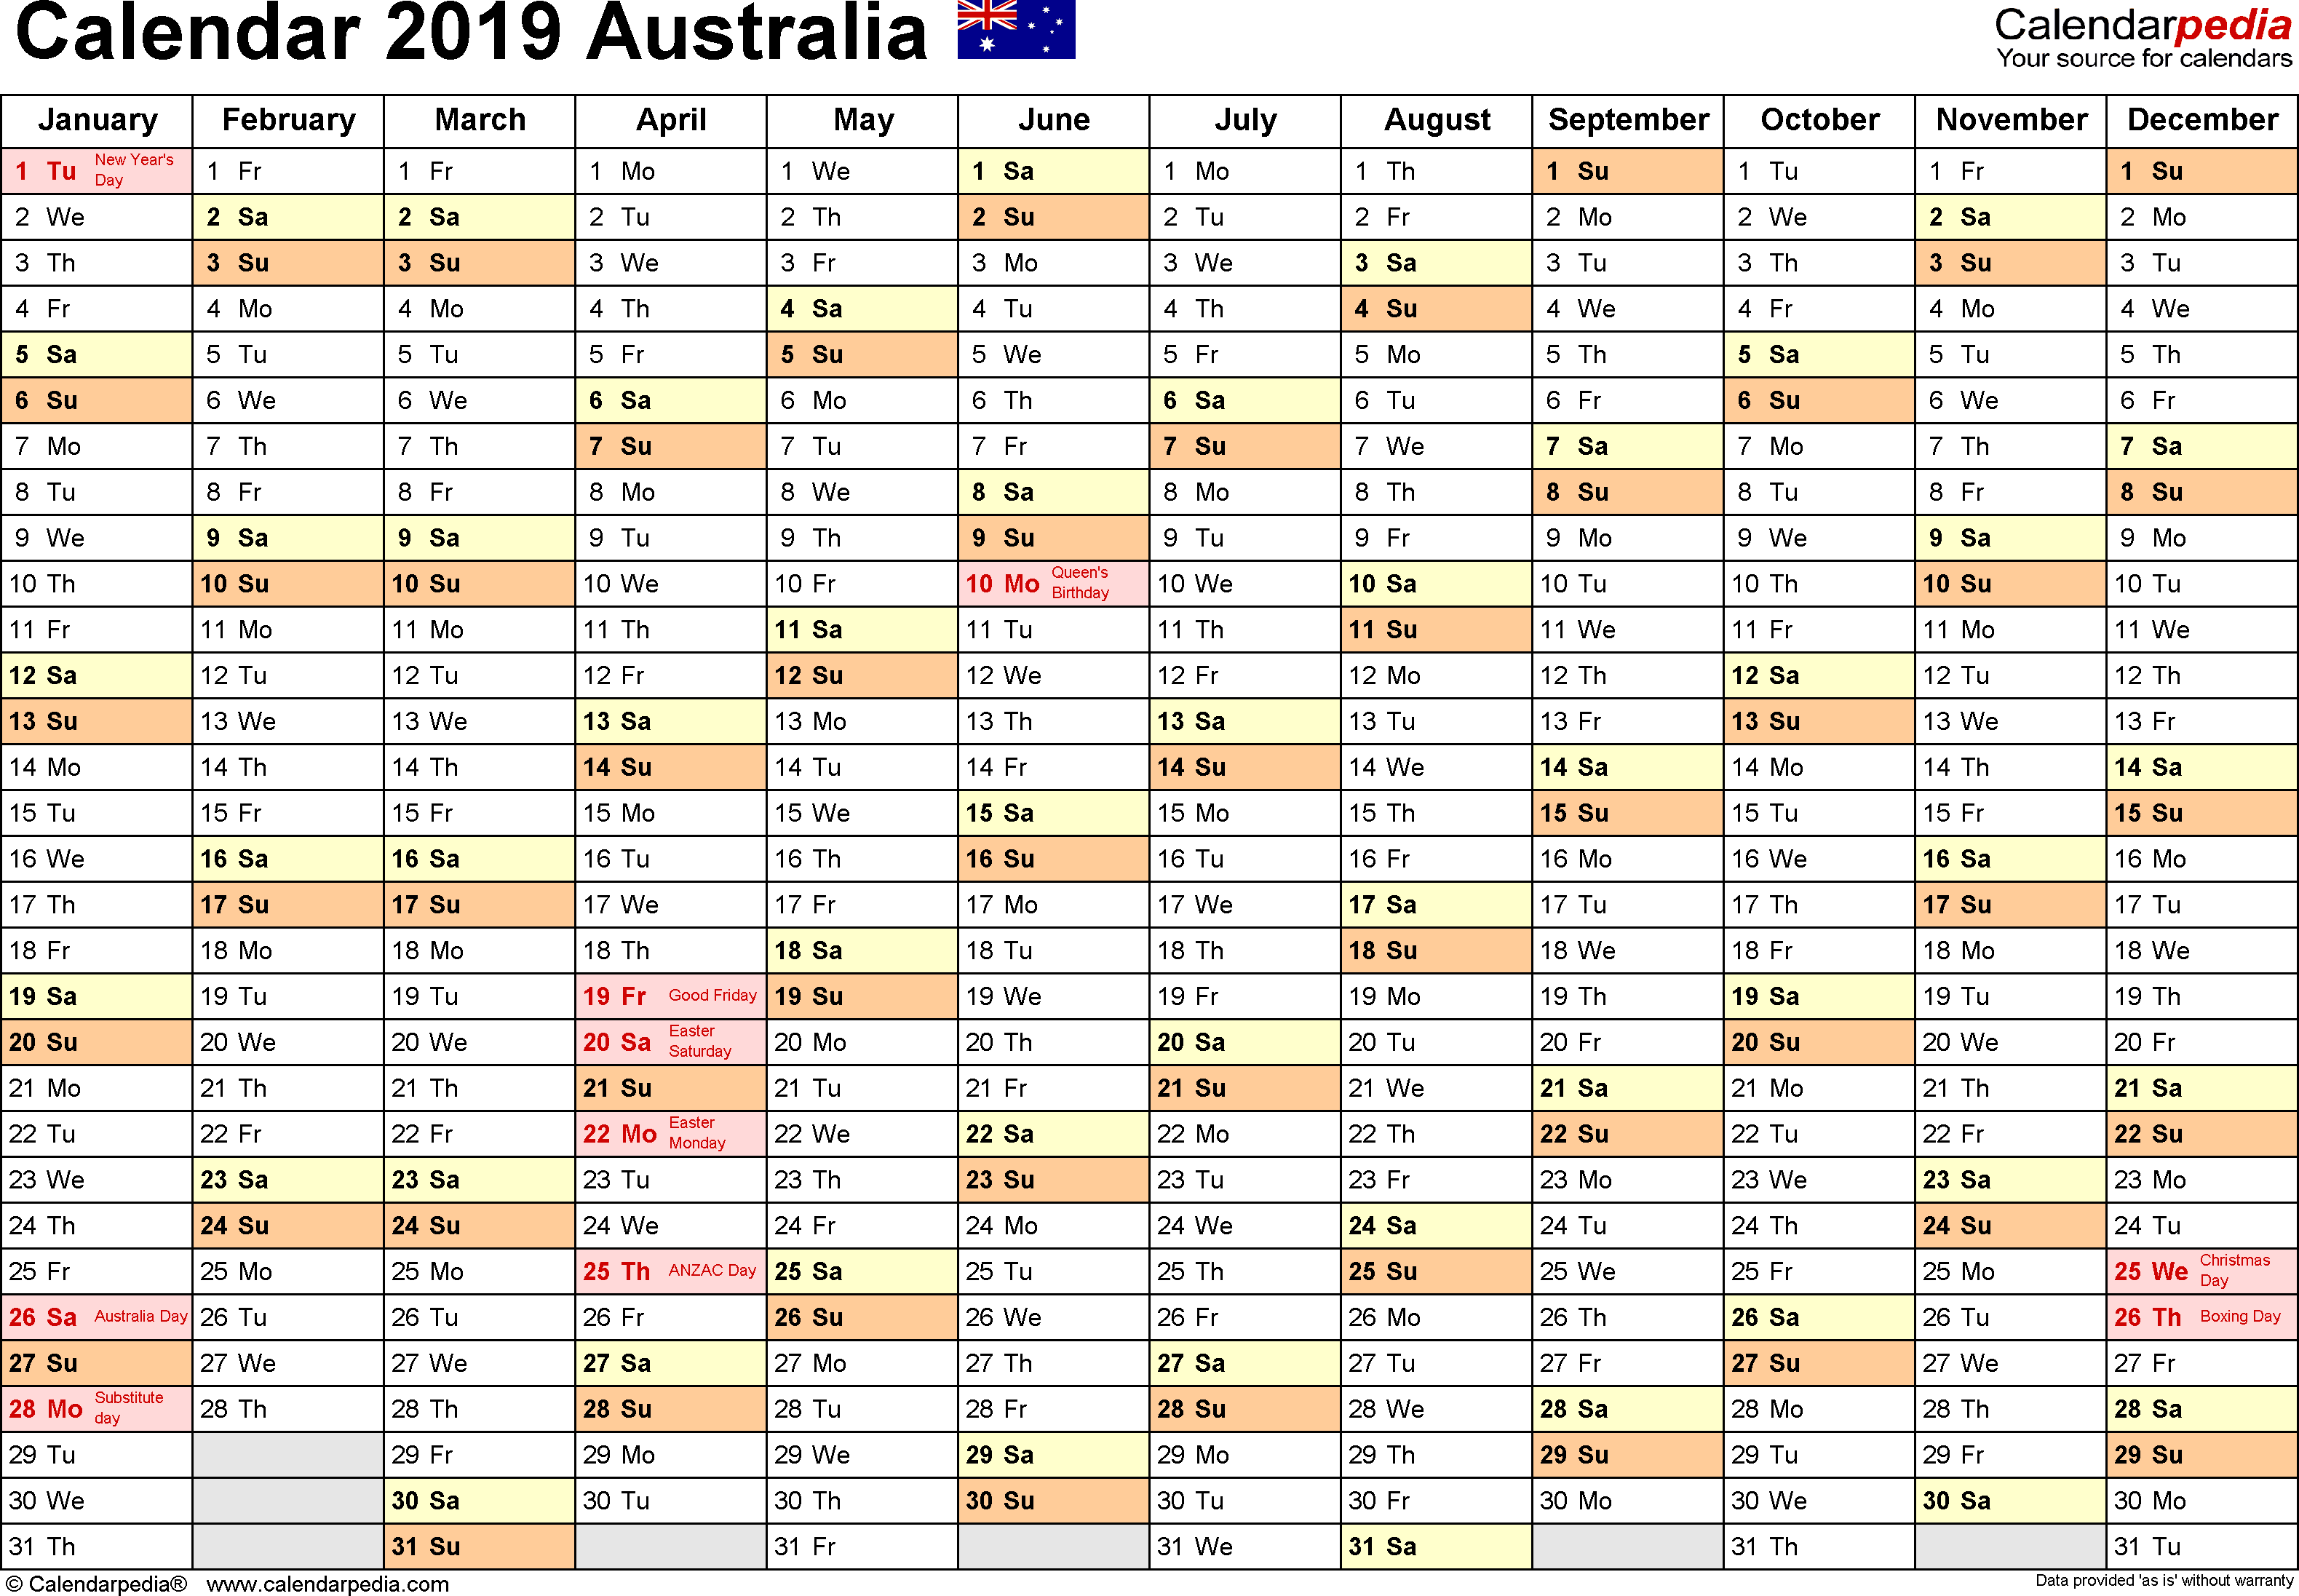 Template 2: 2019 Calendar Australia for Word, months horizontally, 1 page, landscape orientation